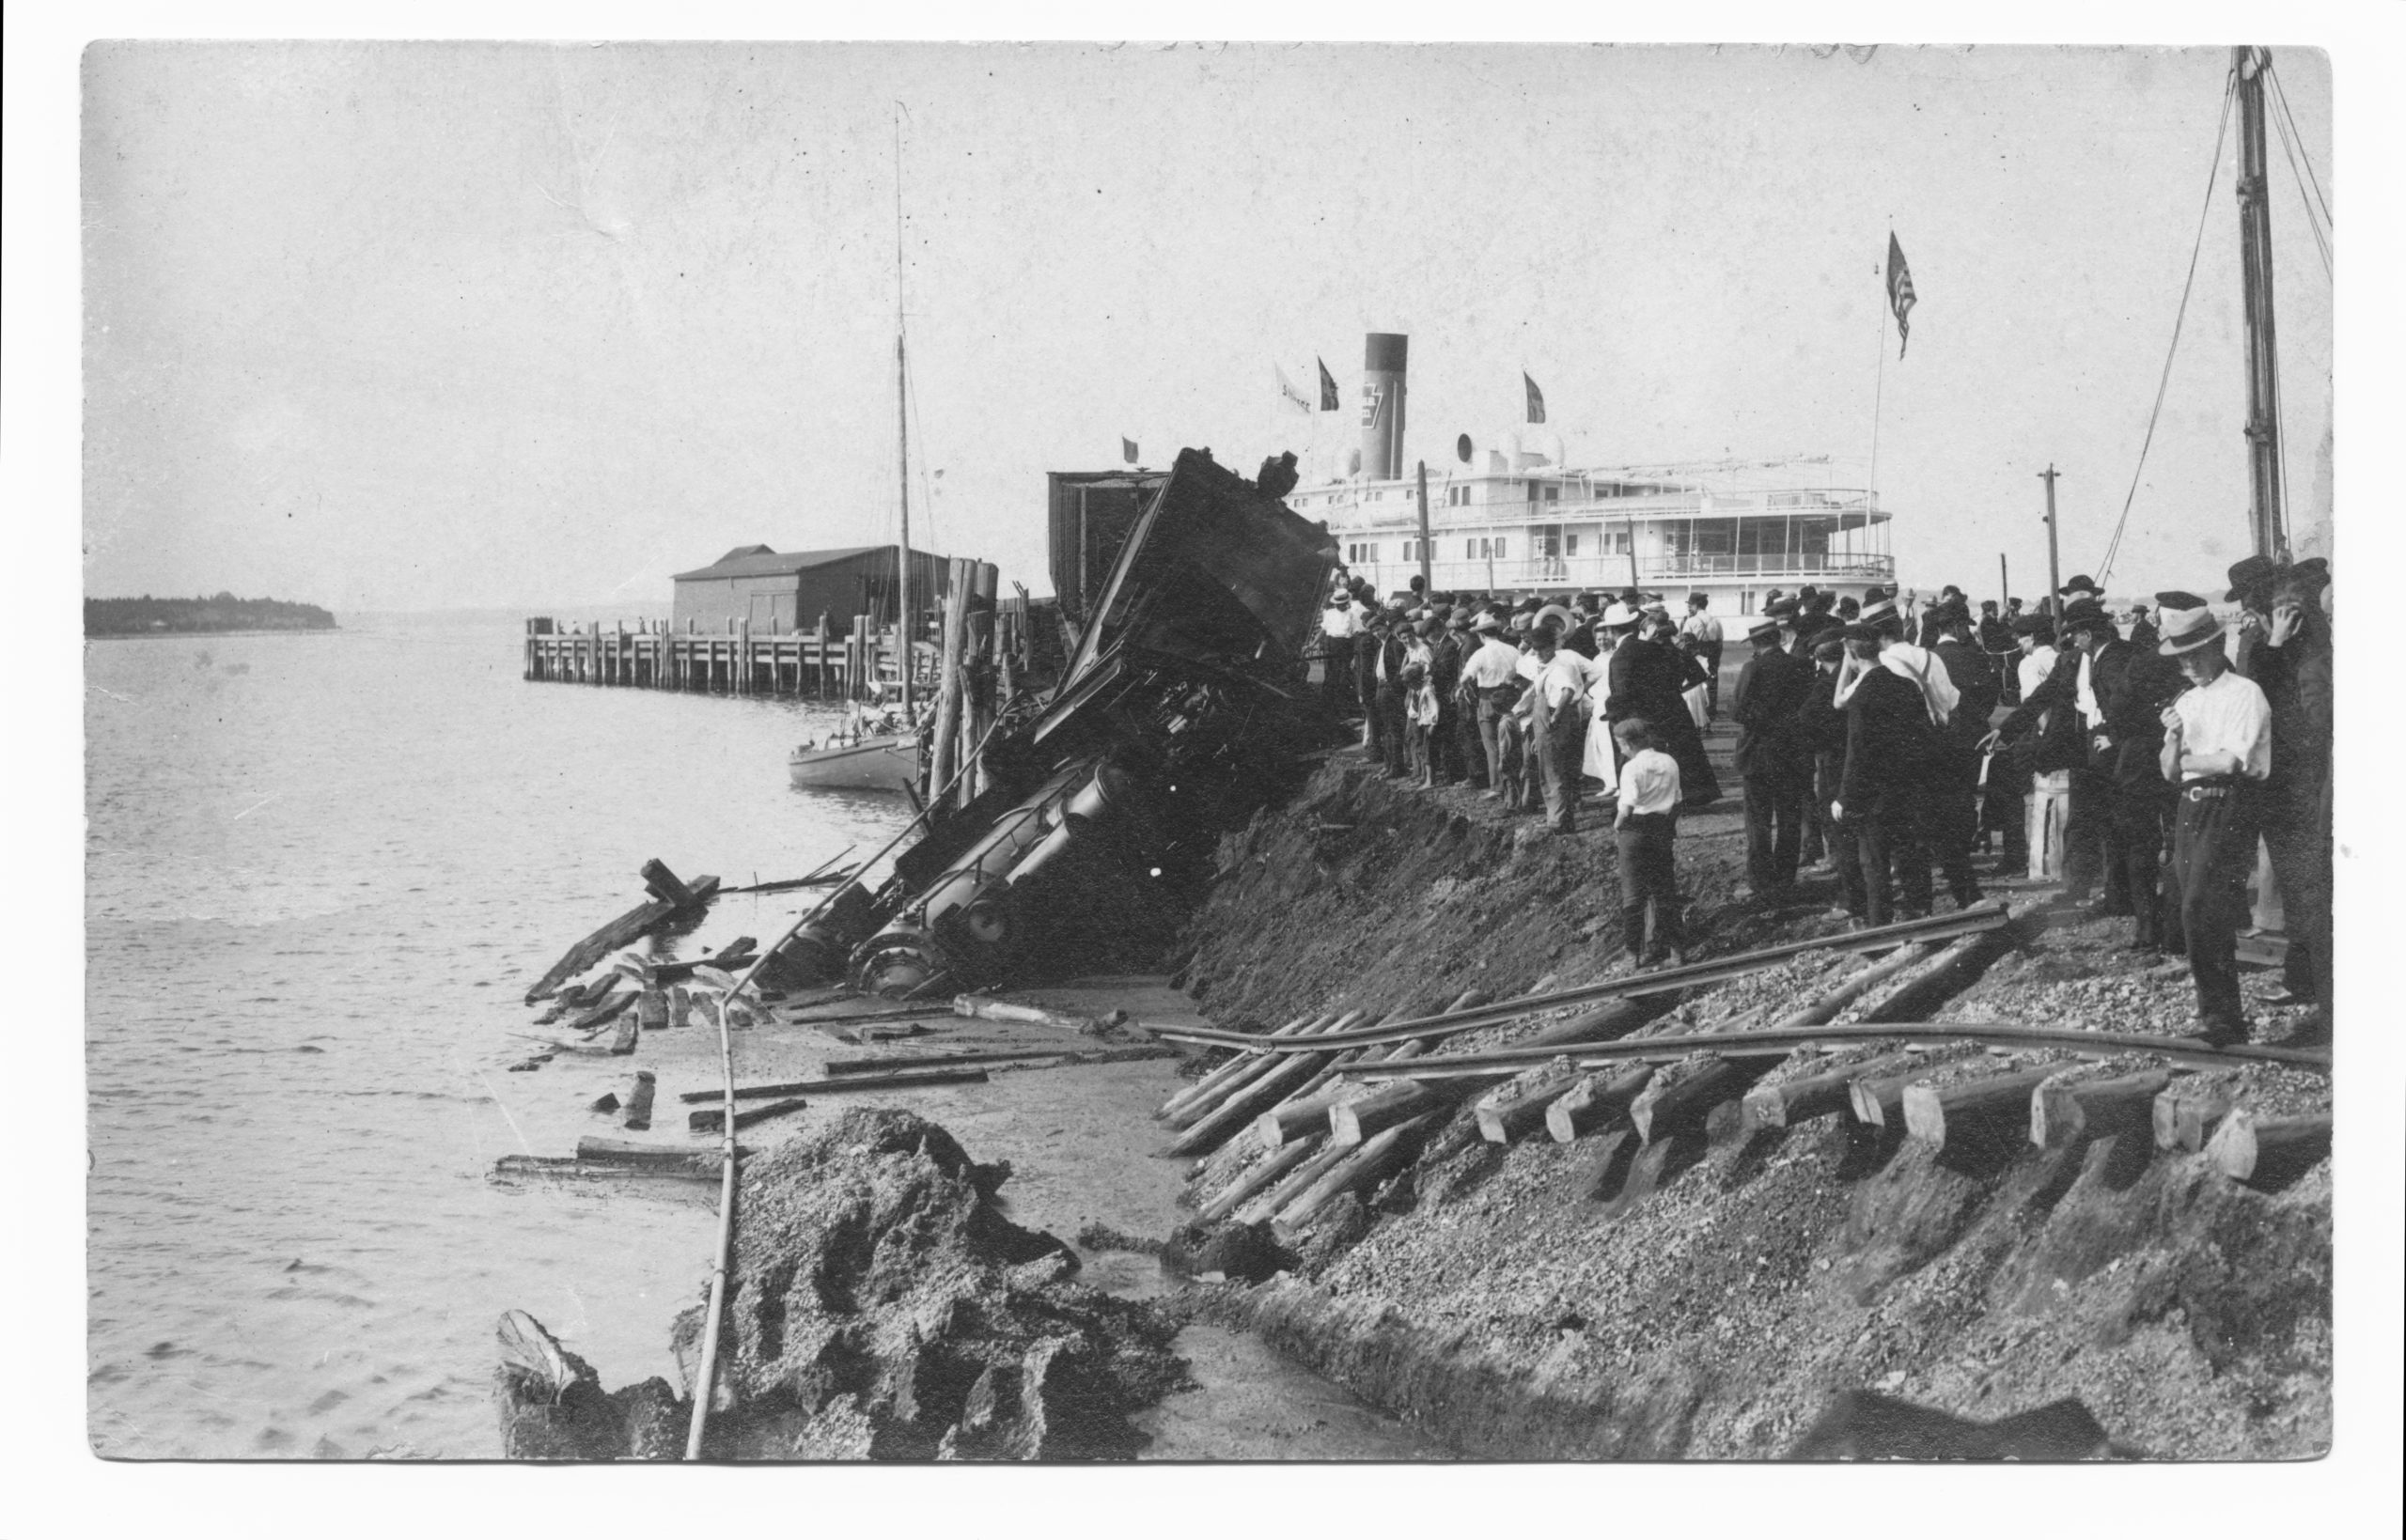 This Long Island Rail Road locomotive ended up in the harbor when a portion of Long Wharf collapsed in 1908. Gift of Steve Peters to Sag Harbor Historical Society.